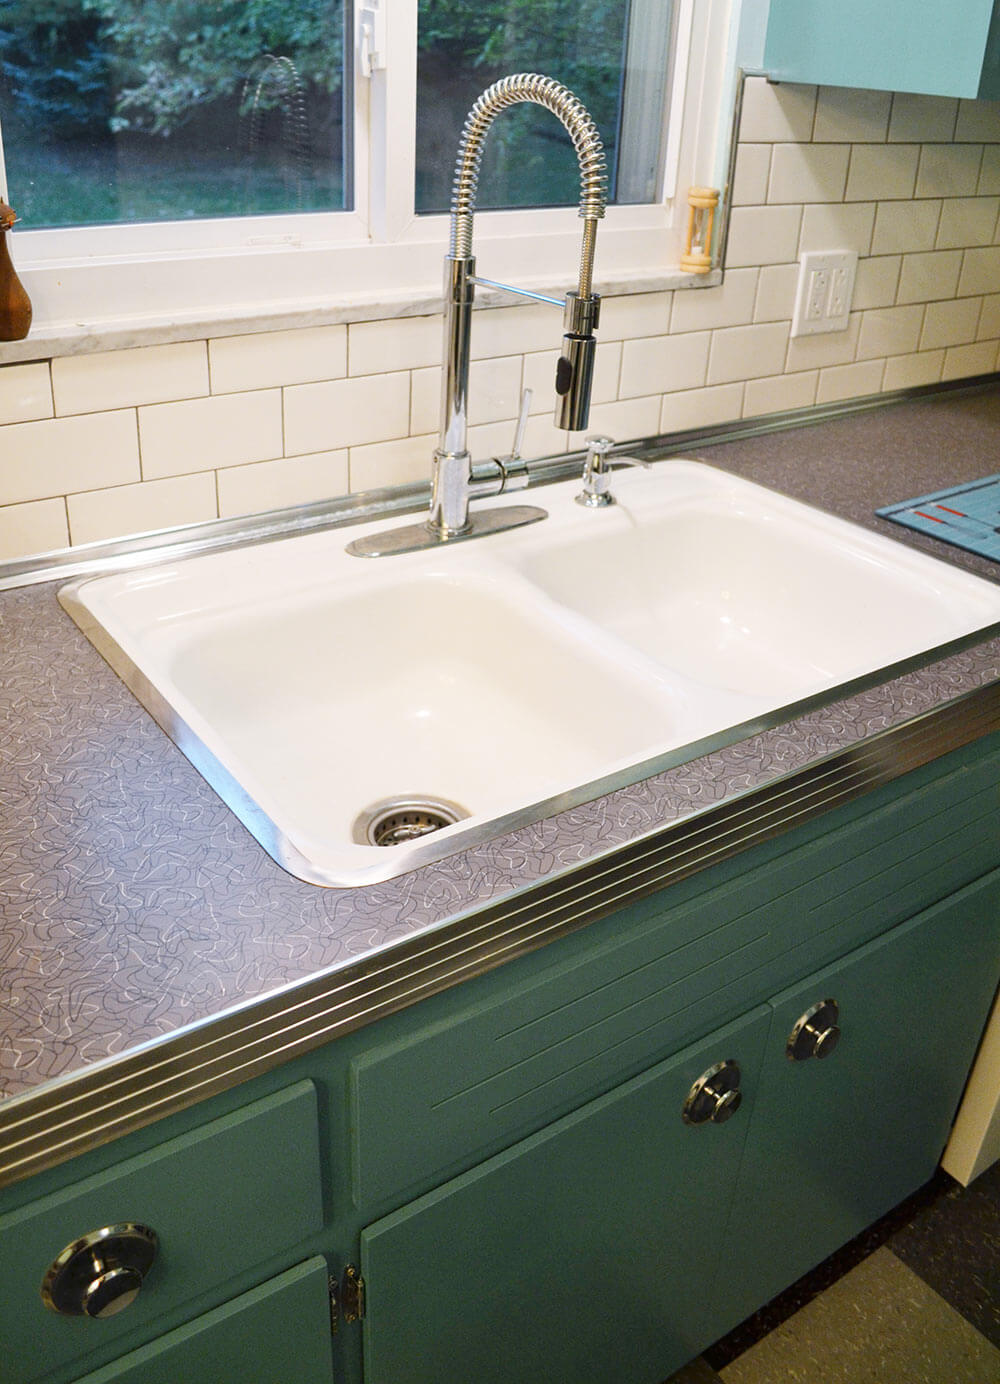 Retro Kitchen Sink Interior Home Design